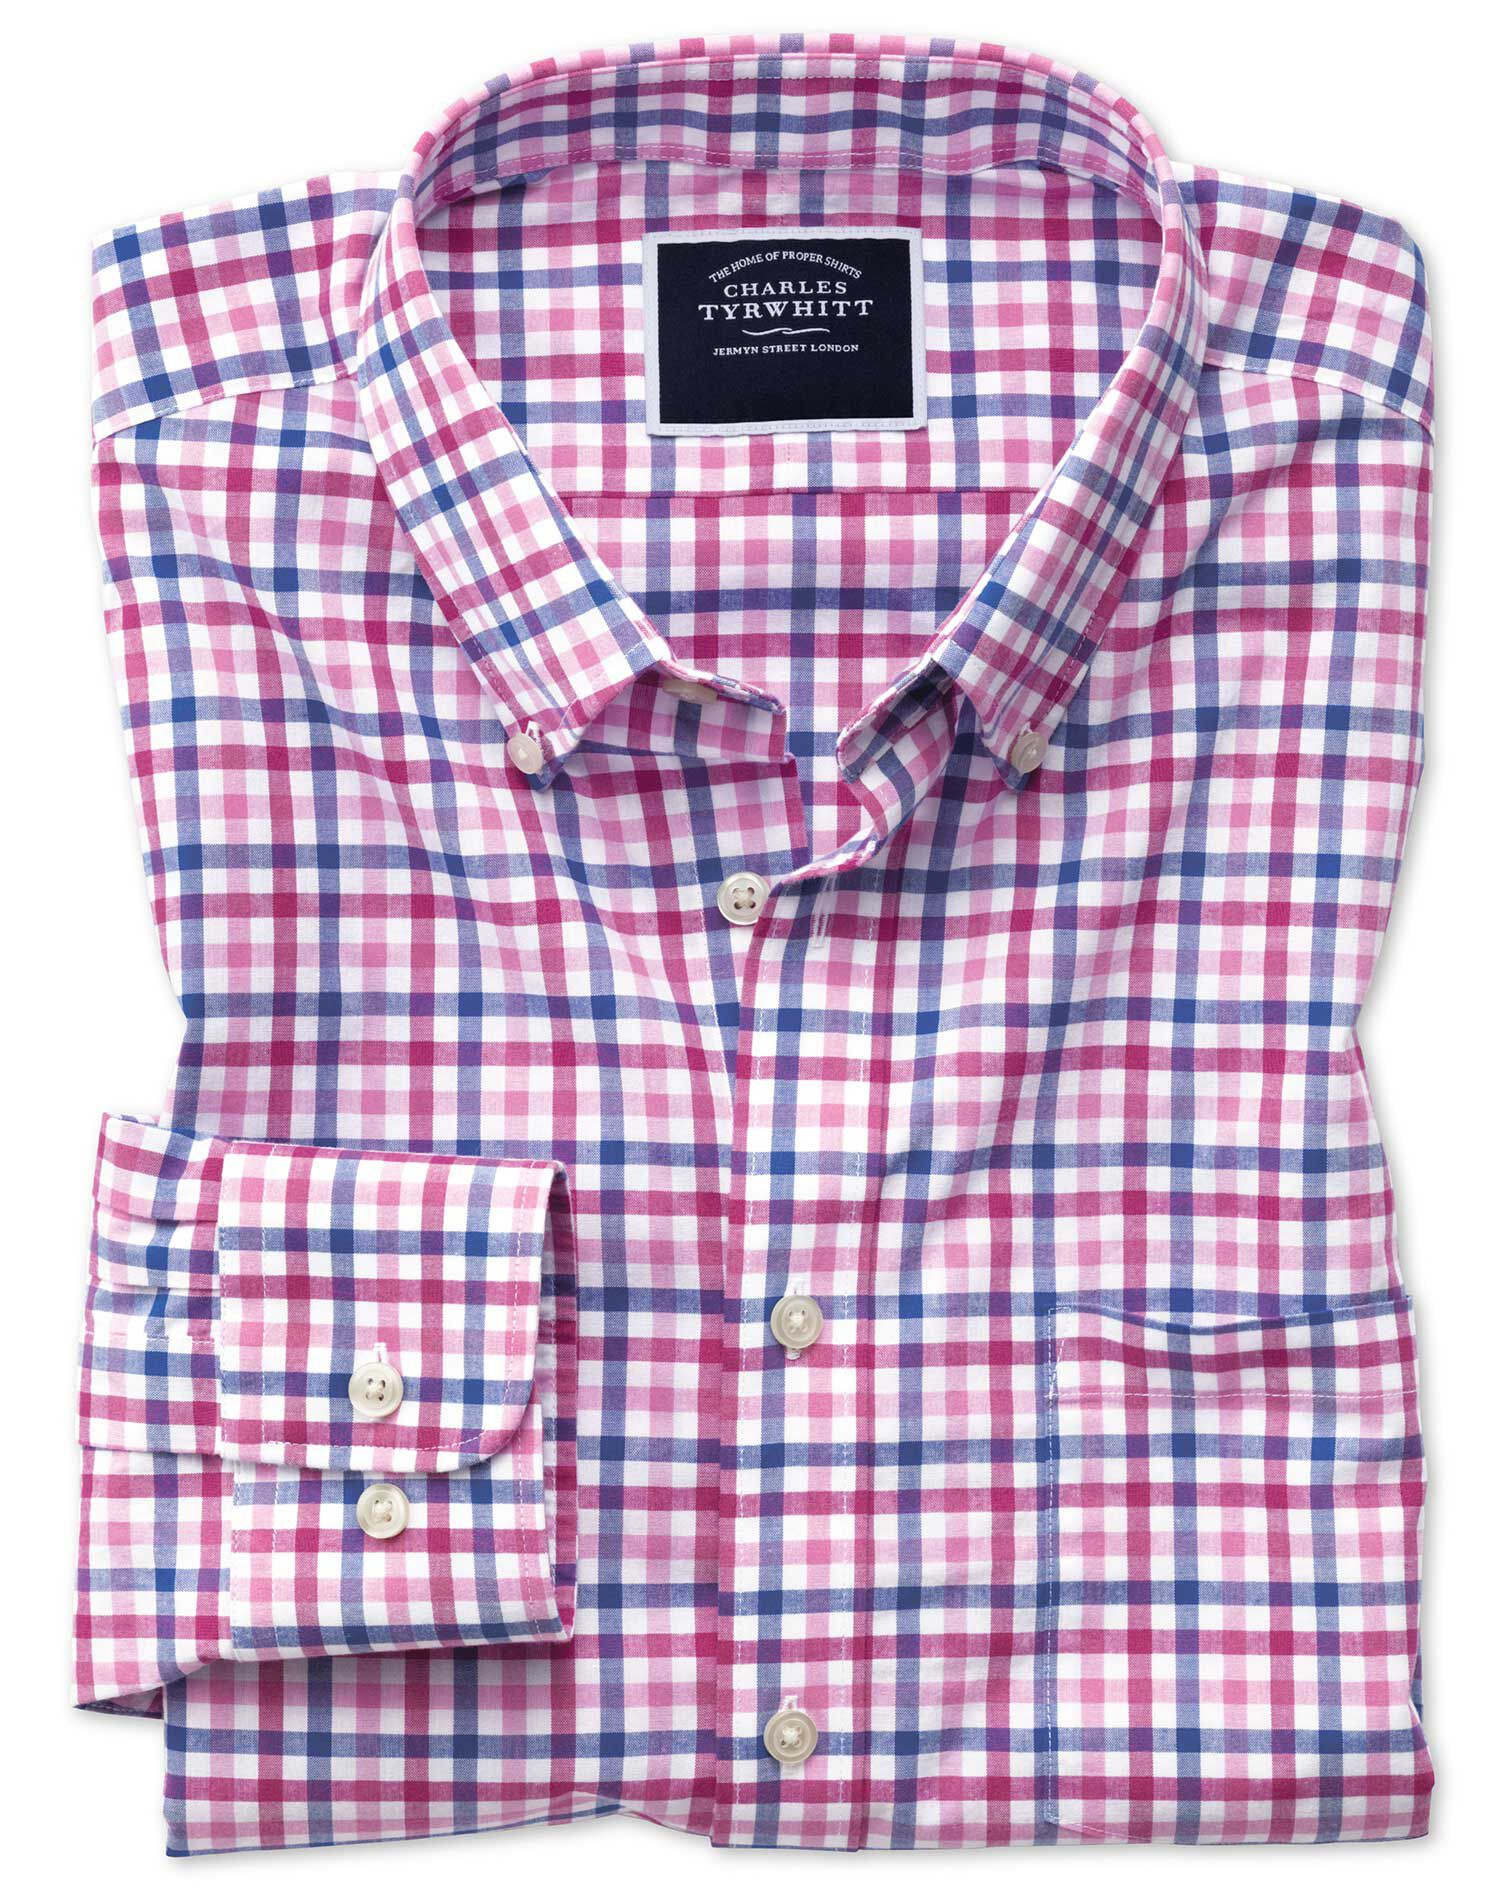 Charles Coupe Tyrwhitt Rose Vichy En Chemise Popeline Droite q6Y7Iw